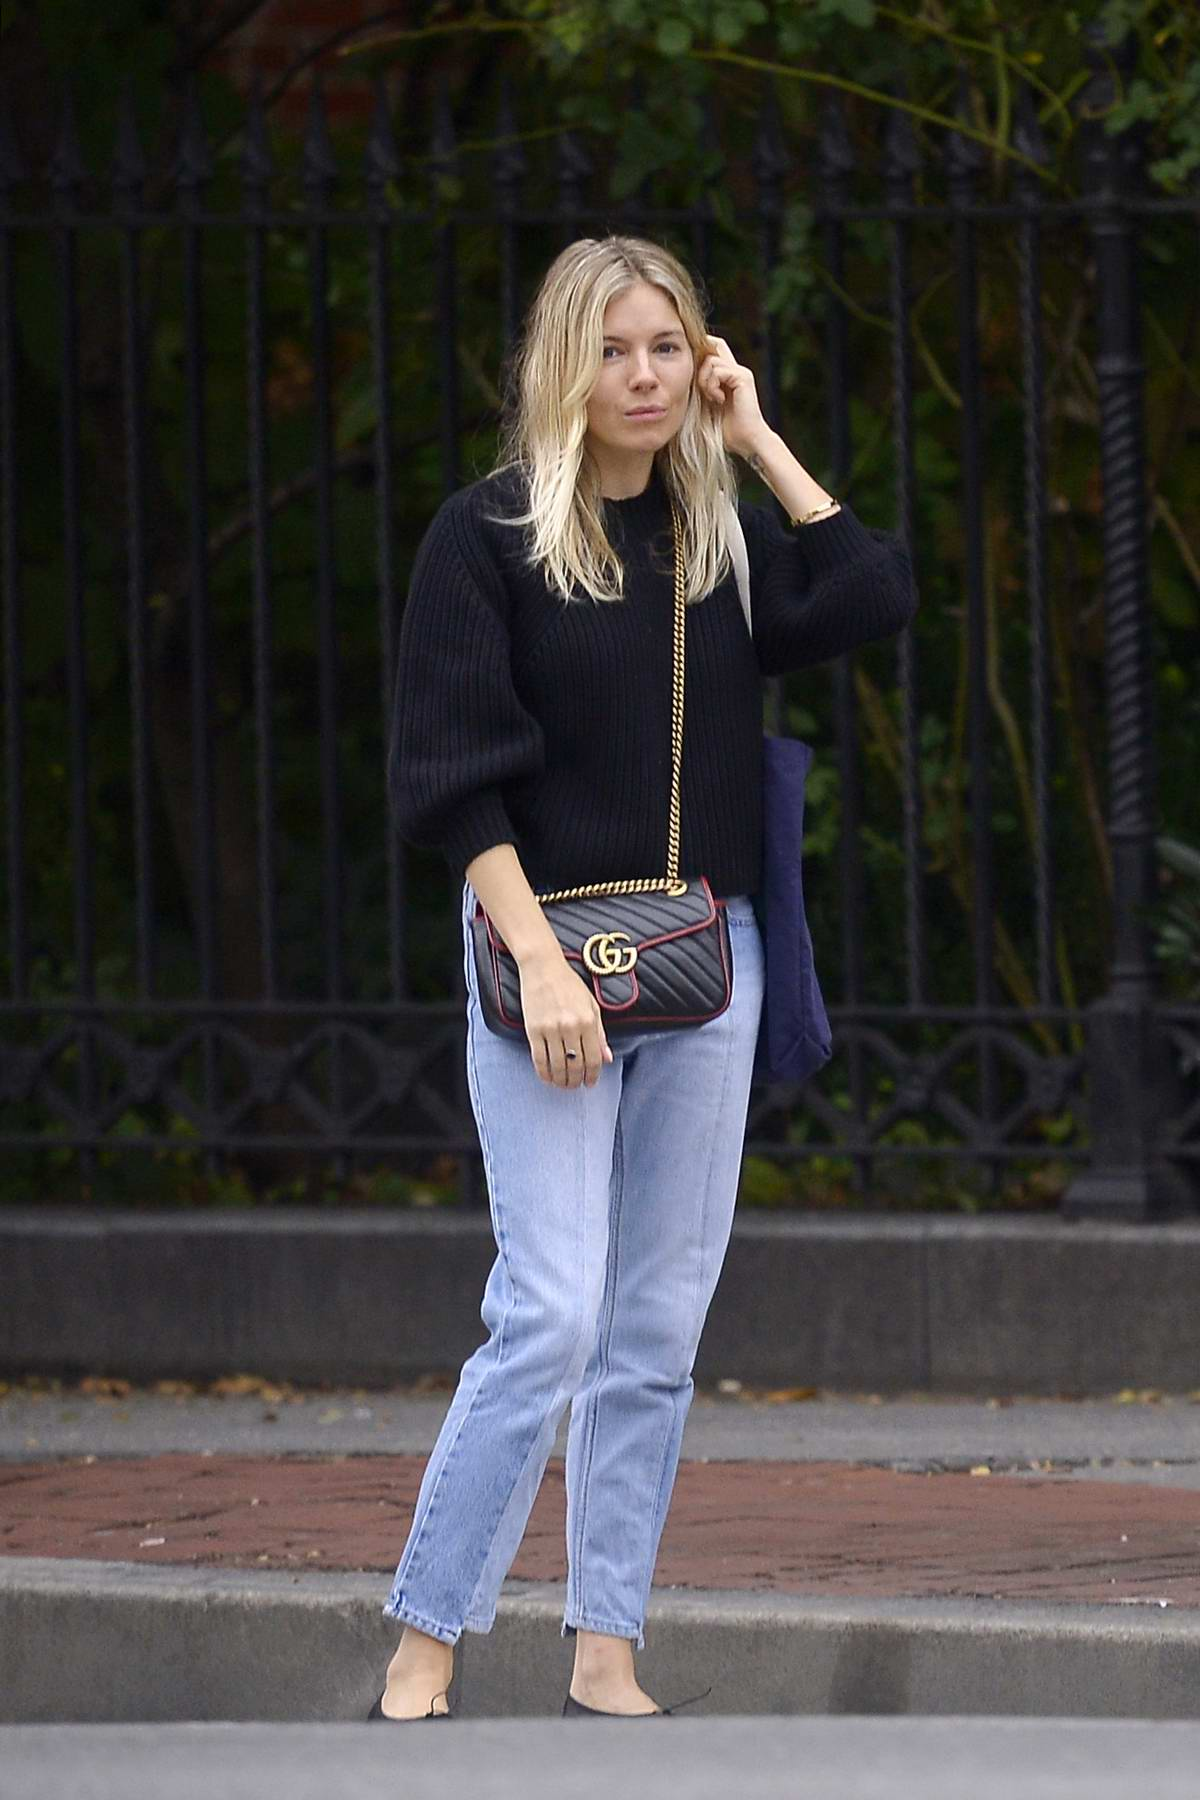 Sienna Miller keeps it casual as she steps out to run a few errands in New York City